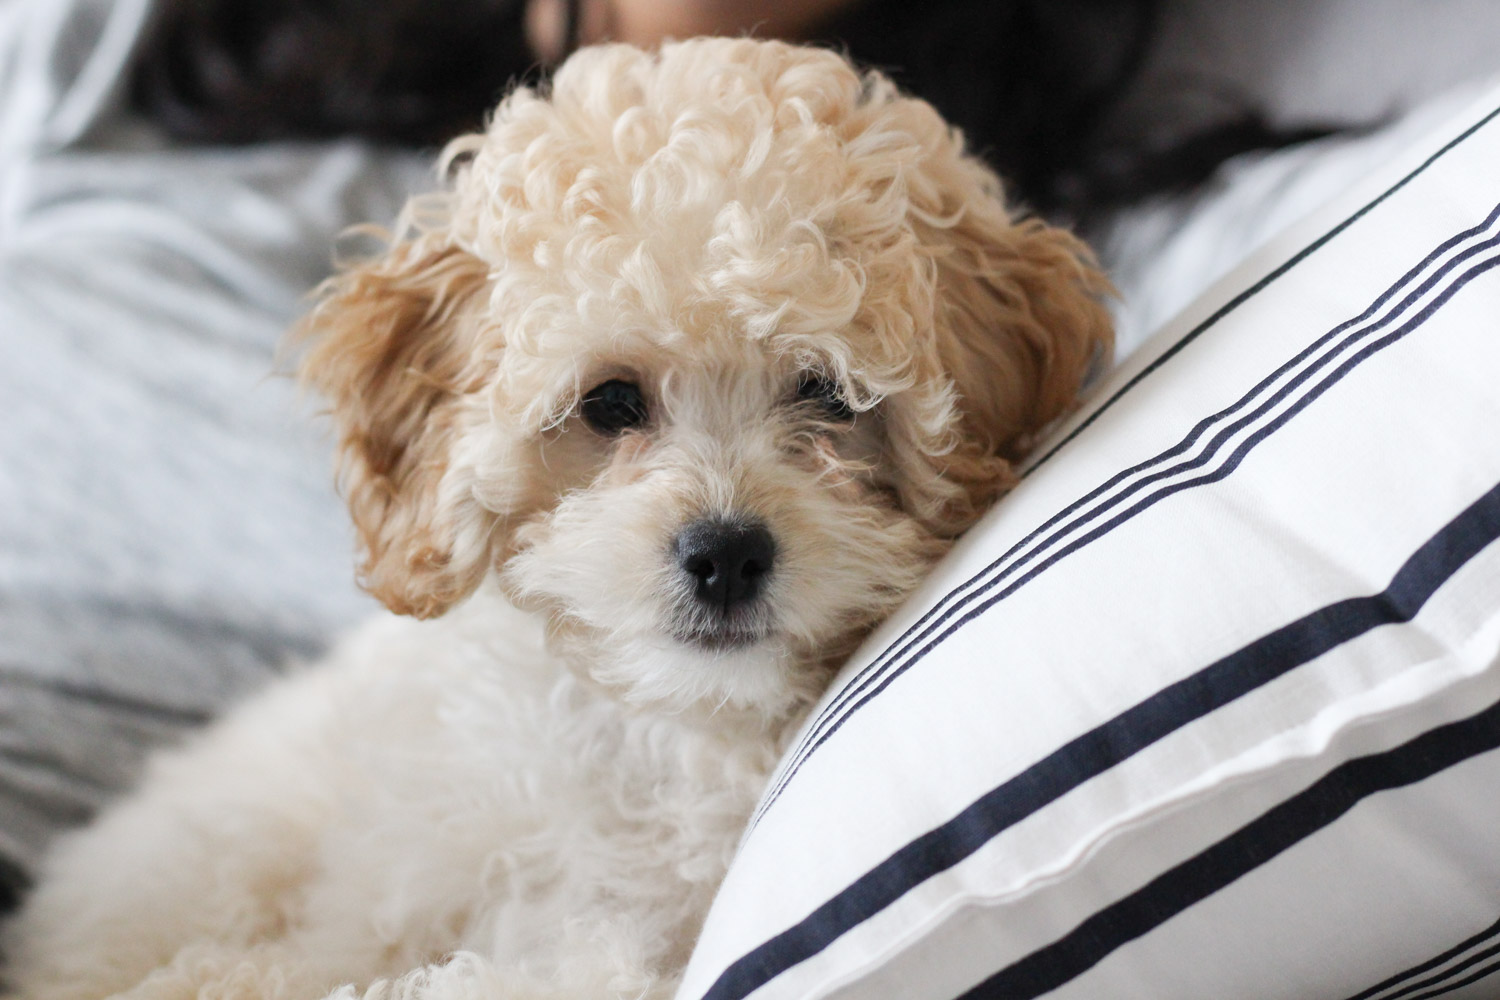 Meet Millie - Millies Adoption Story, featured by popular DC lifestyle blogger, Monica Dutia